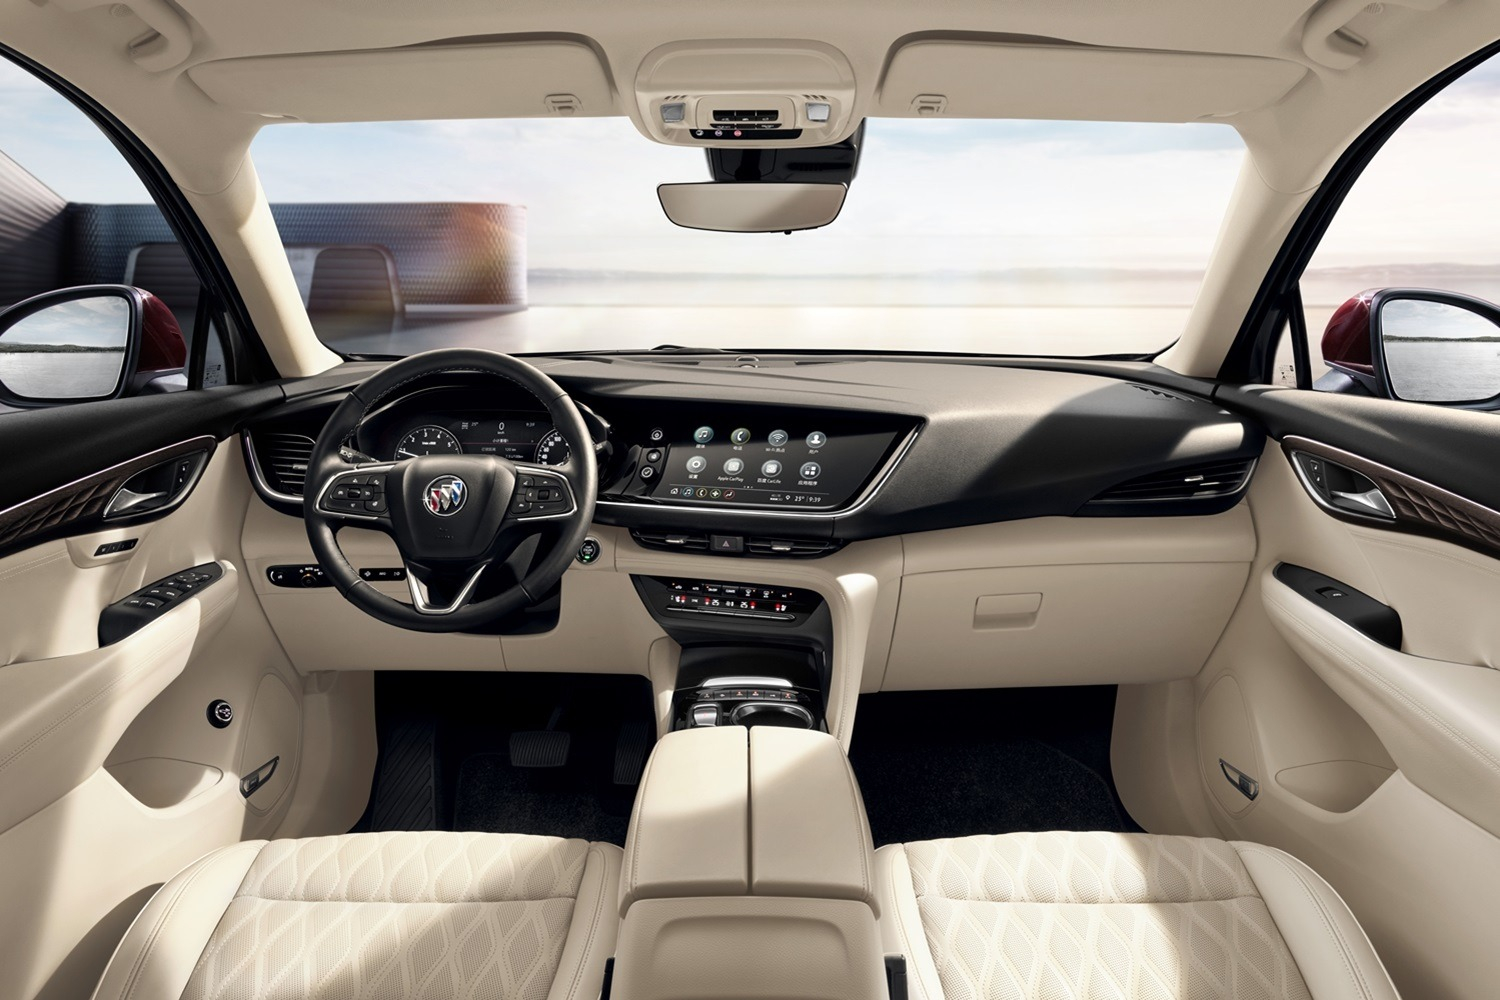 2021 Buick Envision Interior Revealed In Brand New Photos 2021 Buick Envision Interior Colors, Inventory, Images